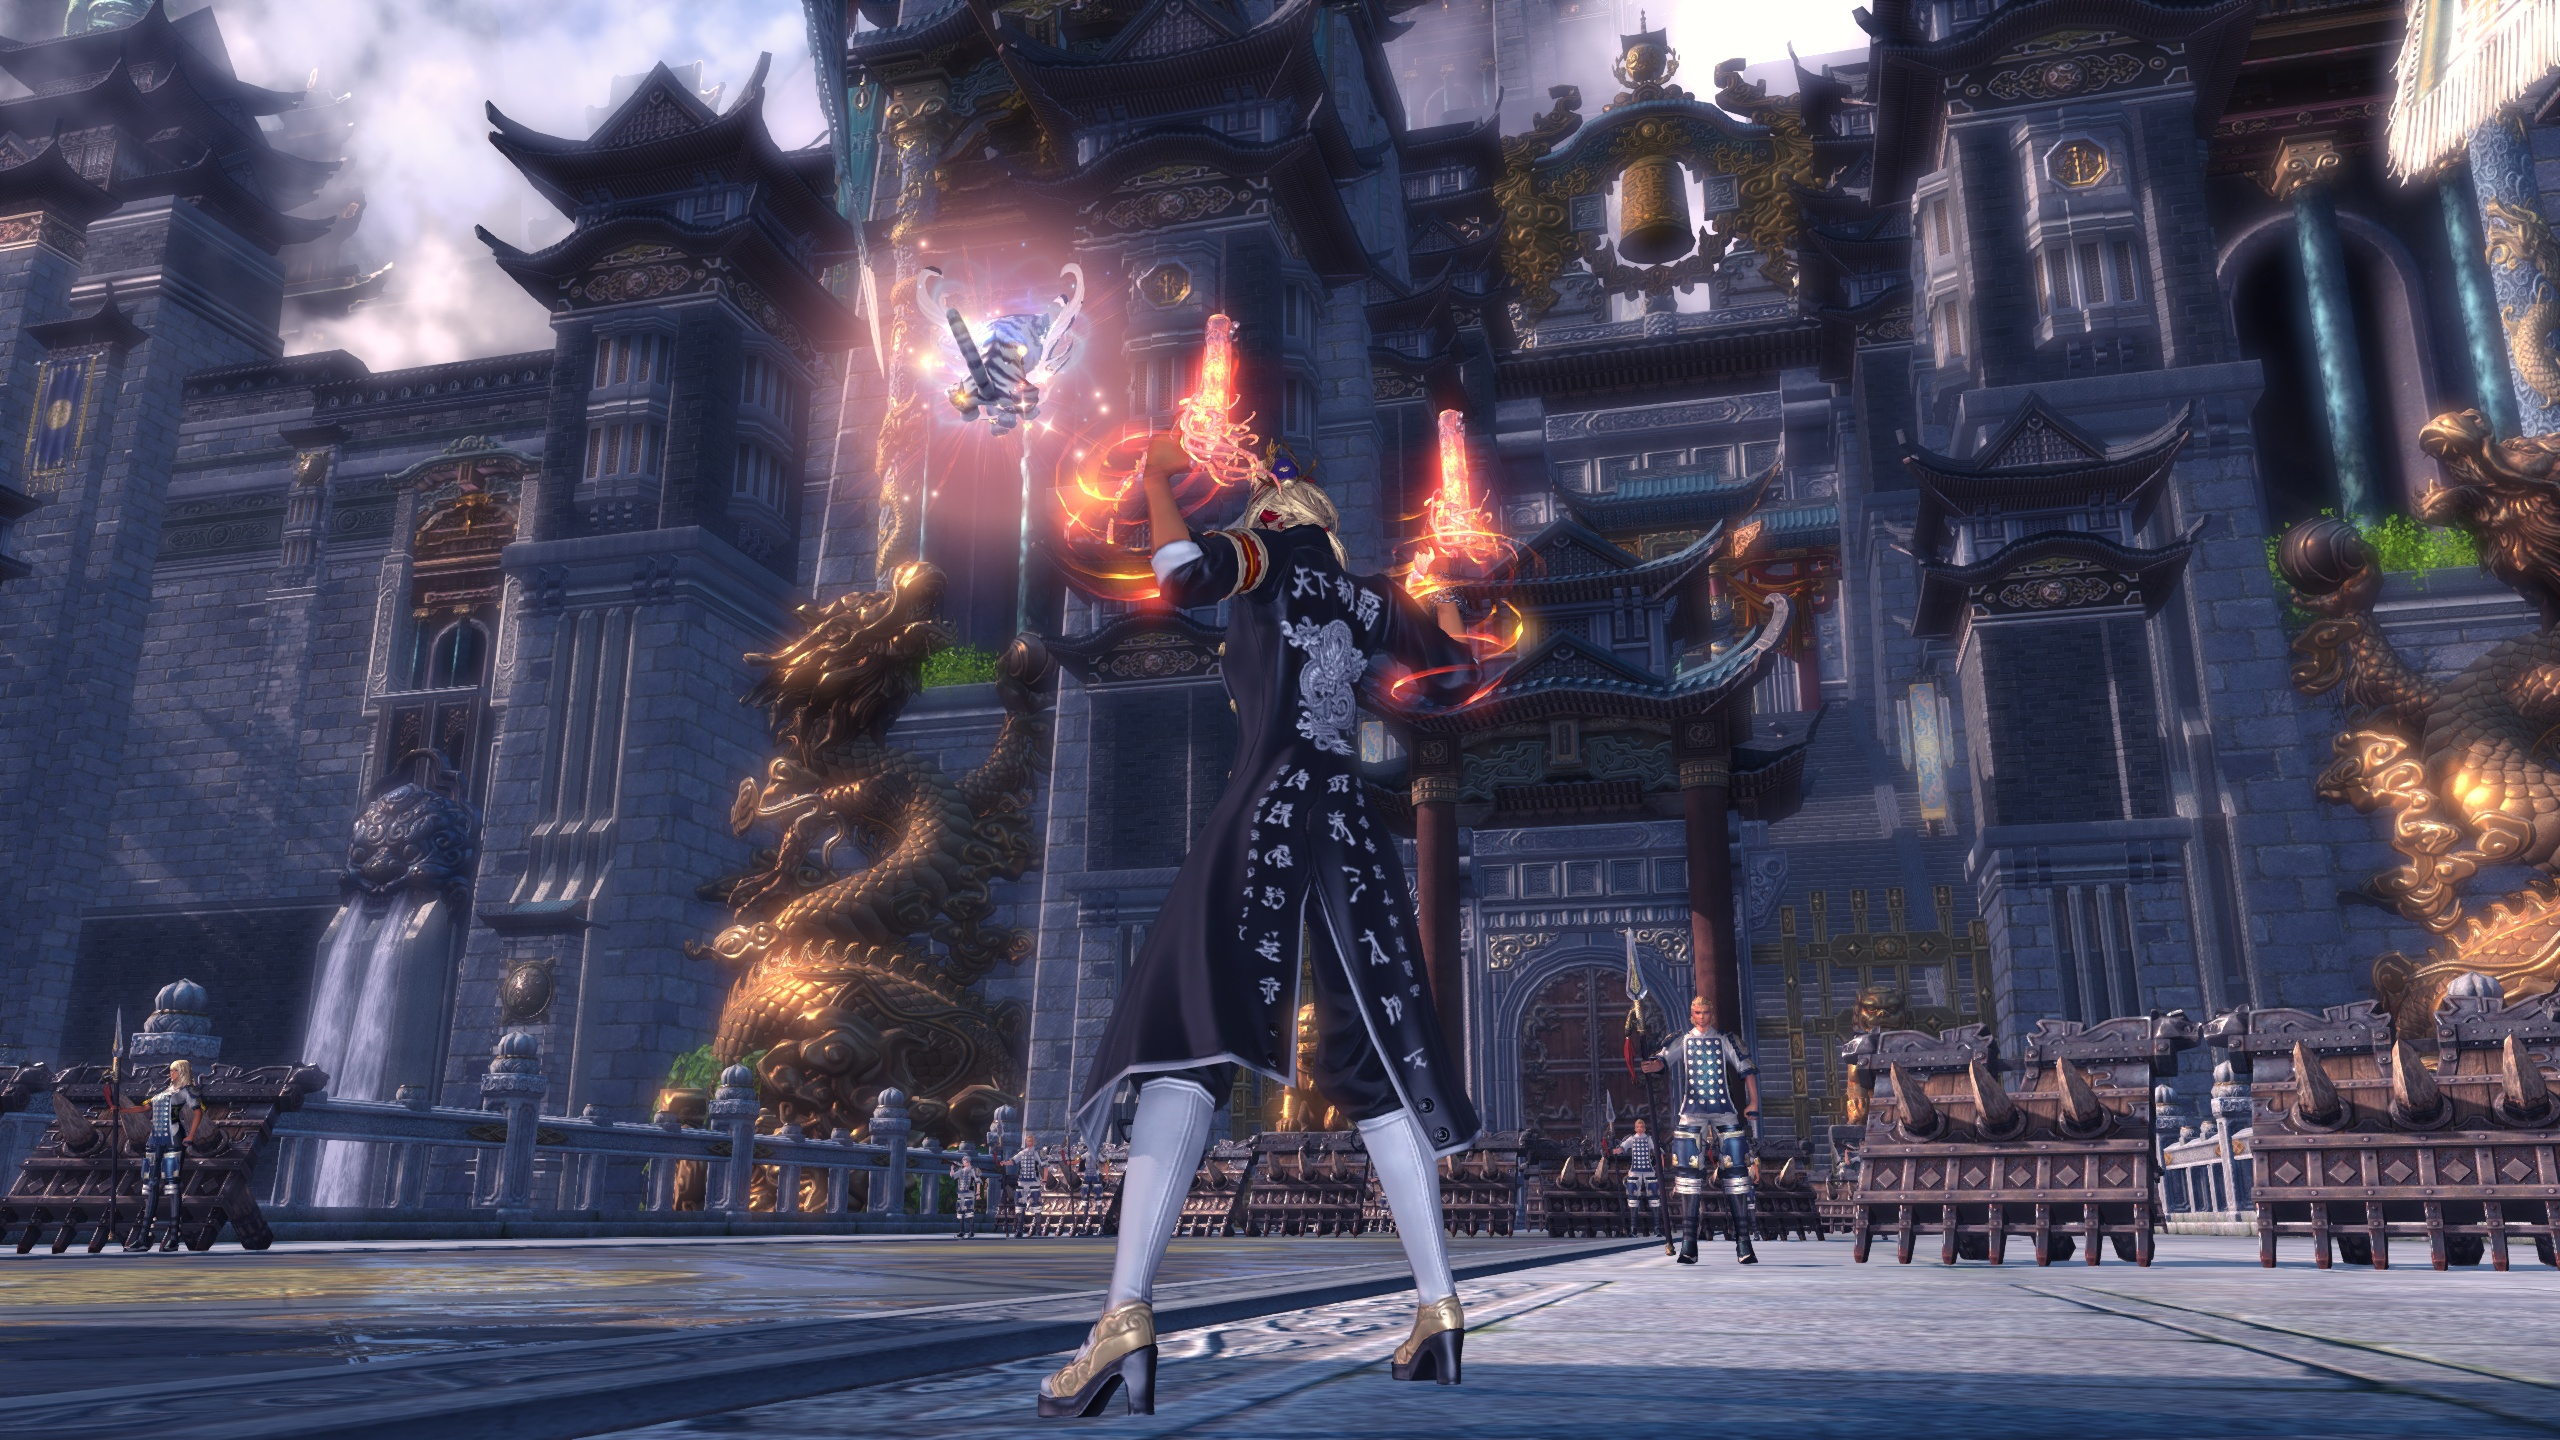 Blade & Soul brings single-player and group challenges to